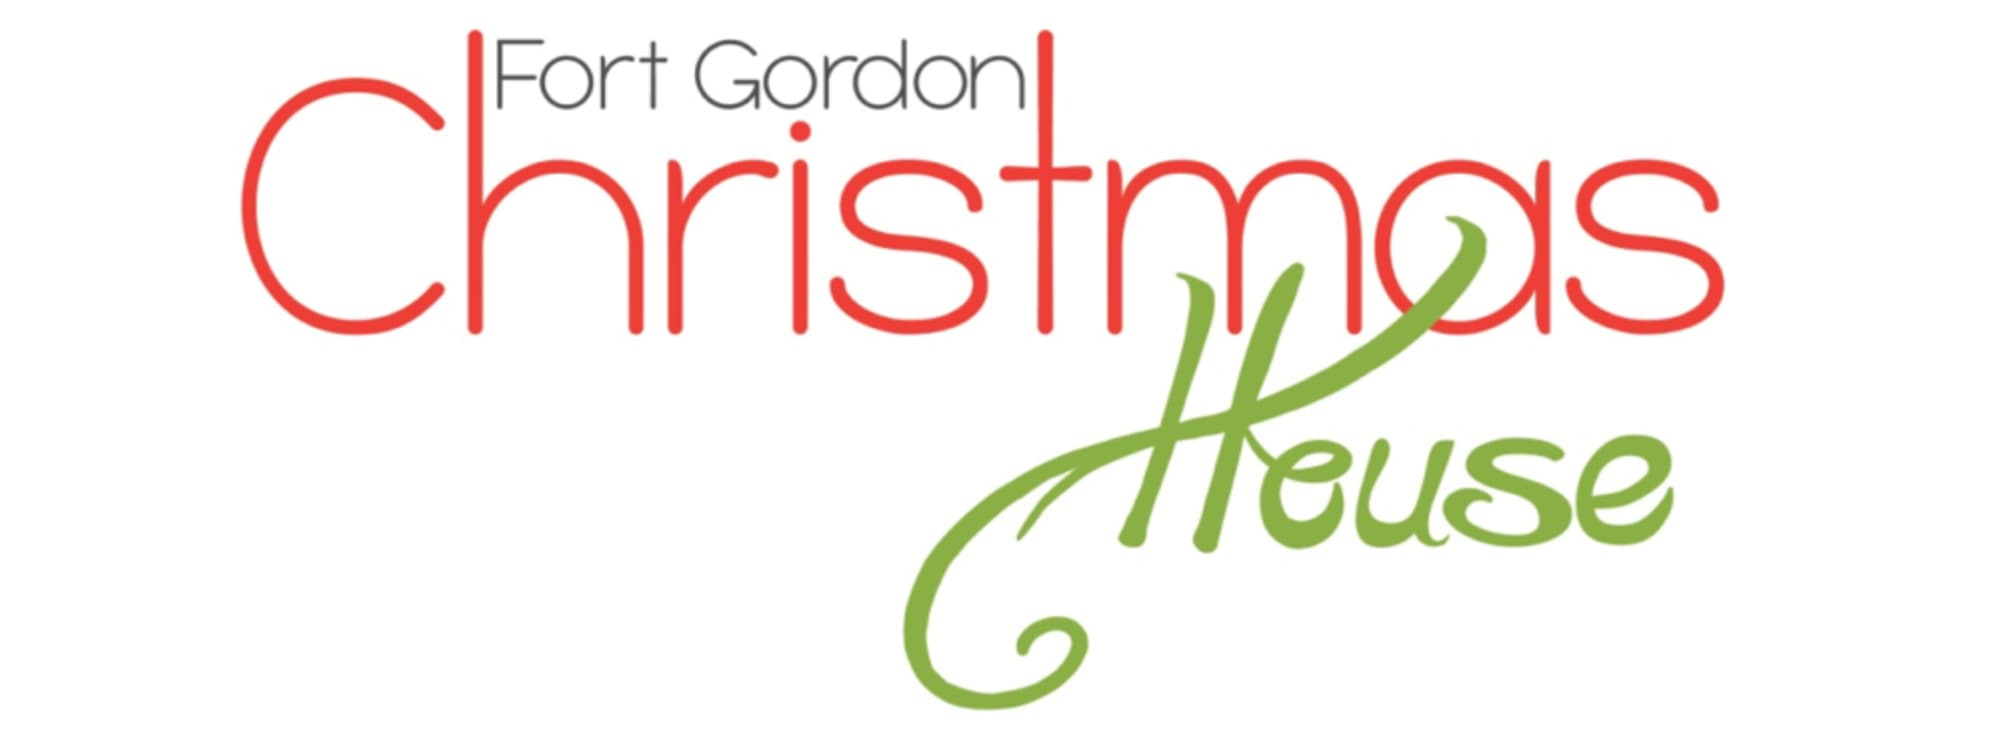 Fort Gordon Christmas House Logo